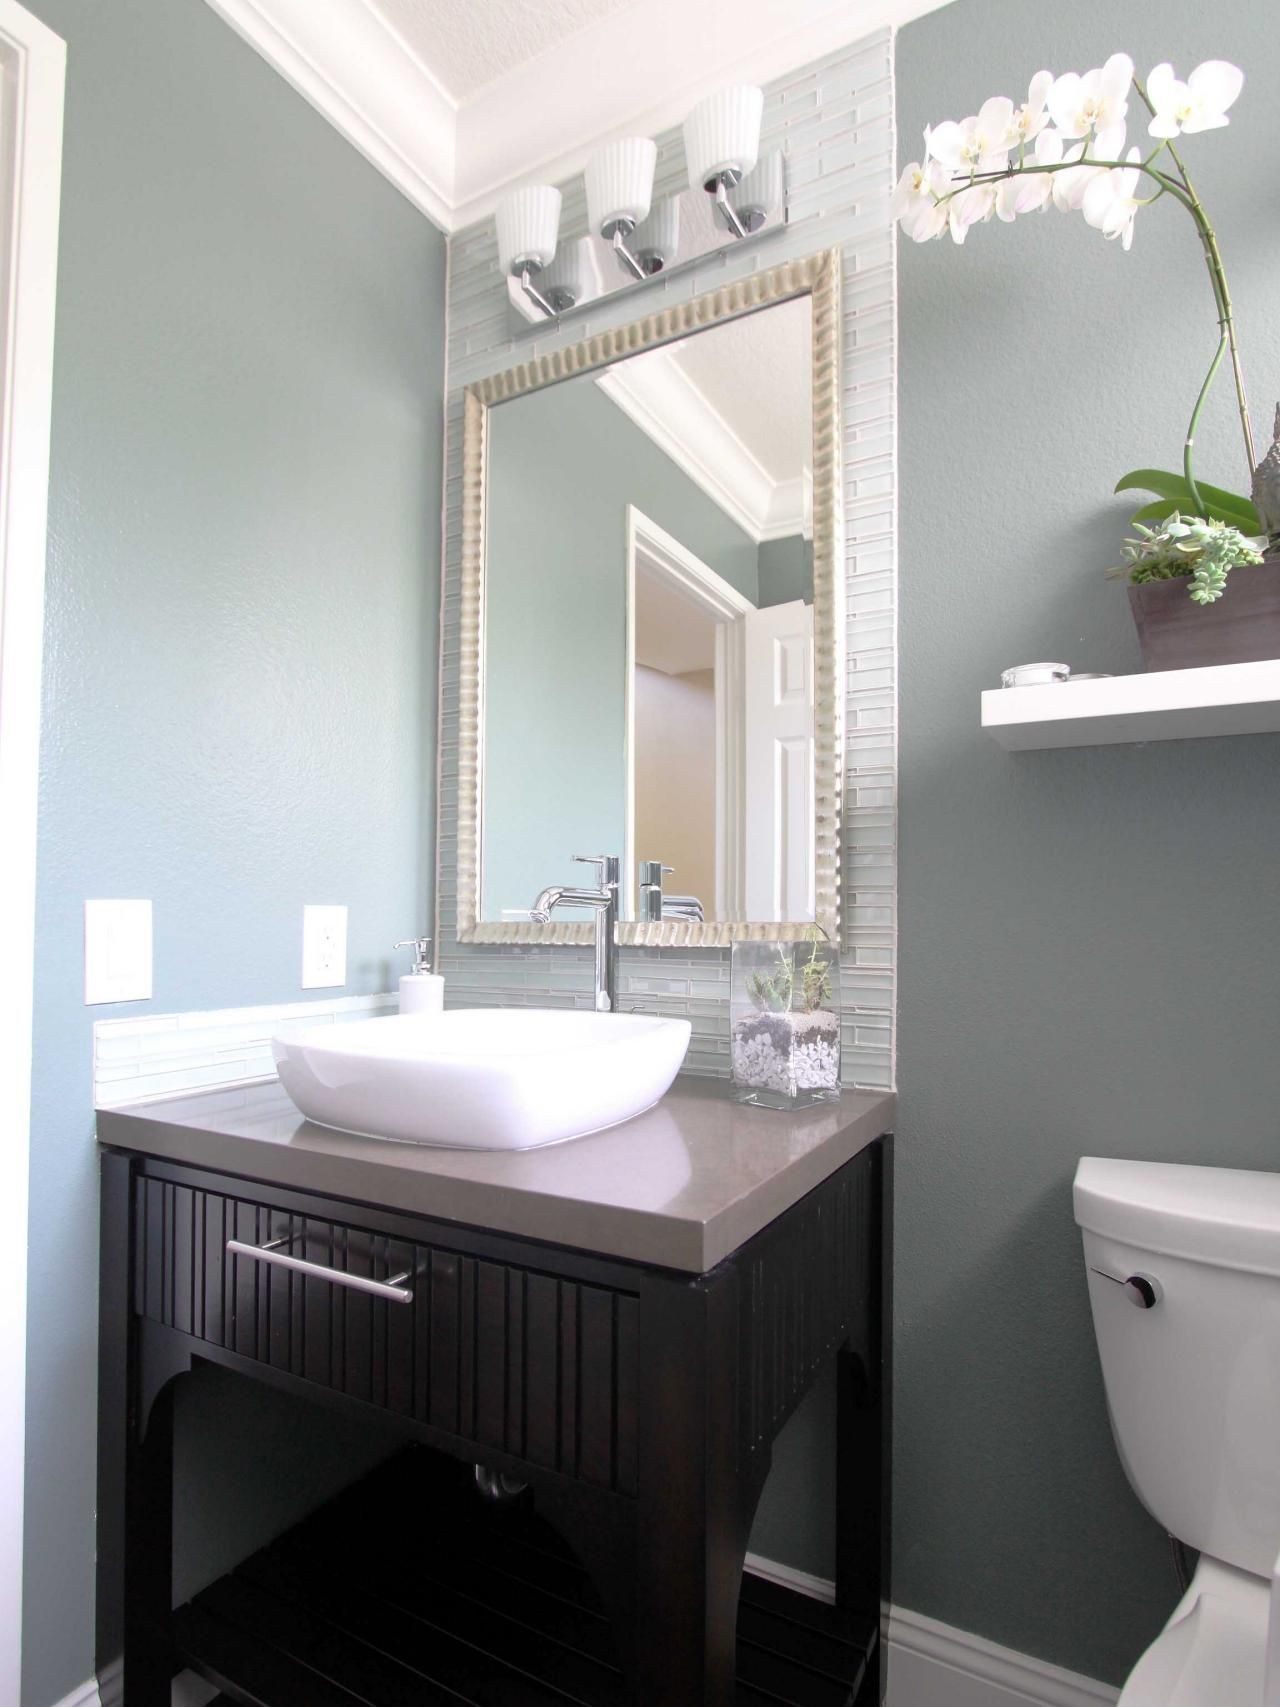 In This Soothing Blue Gray And White Contemporary Bathroom Small Details Add Visual Texture Such As The Framed Mirror Gl Tile Backsplash